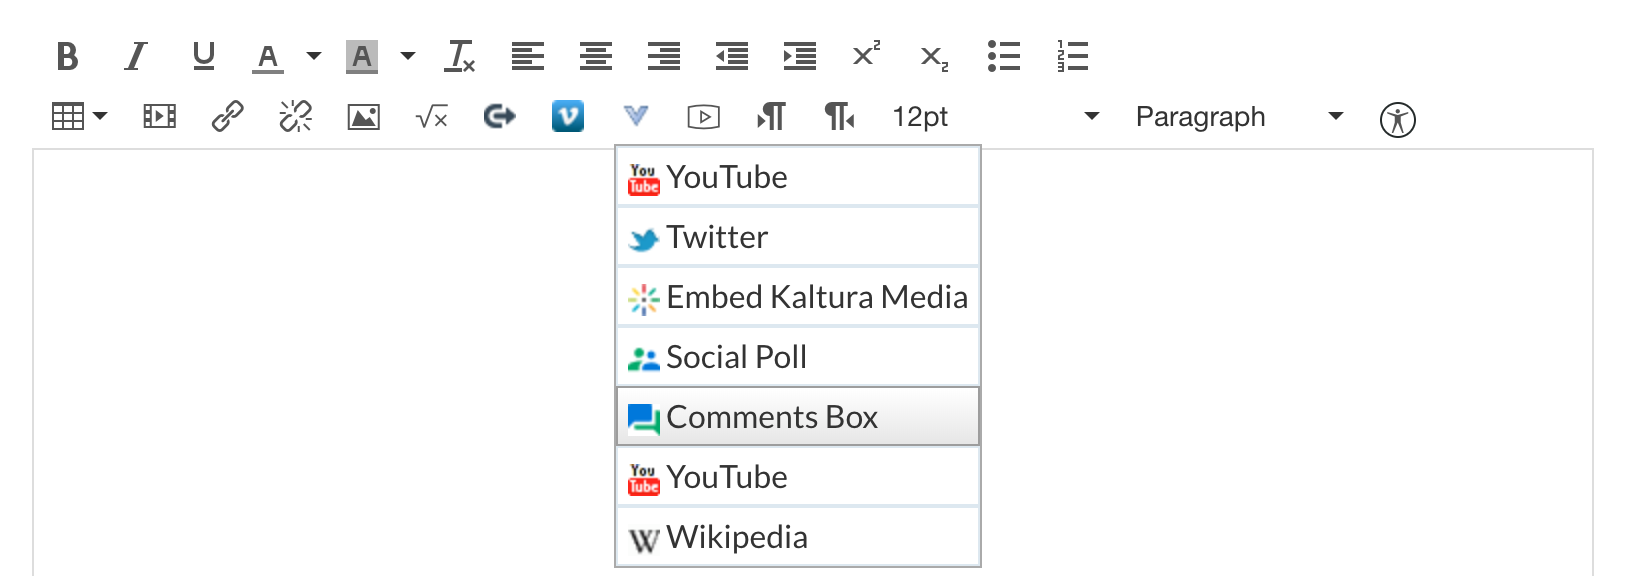 More external tools menu selected from the rich content editor. Comments box is selected which is the fifth menu item out of seven.